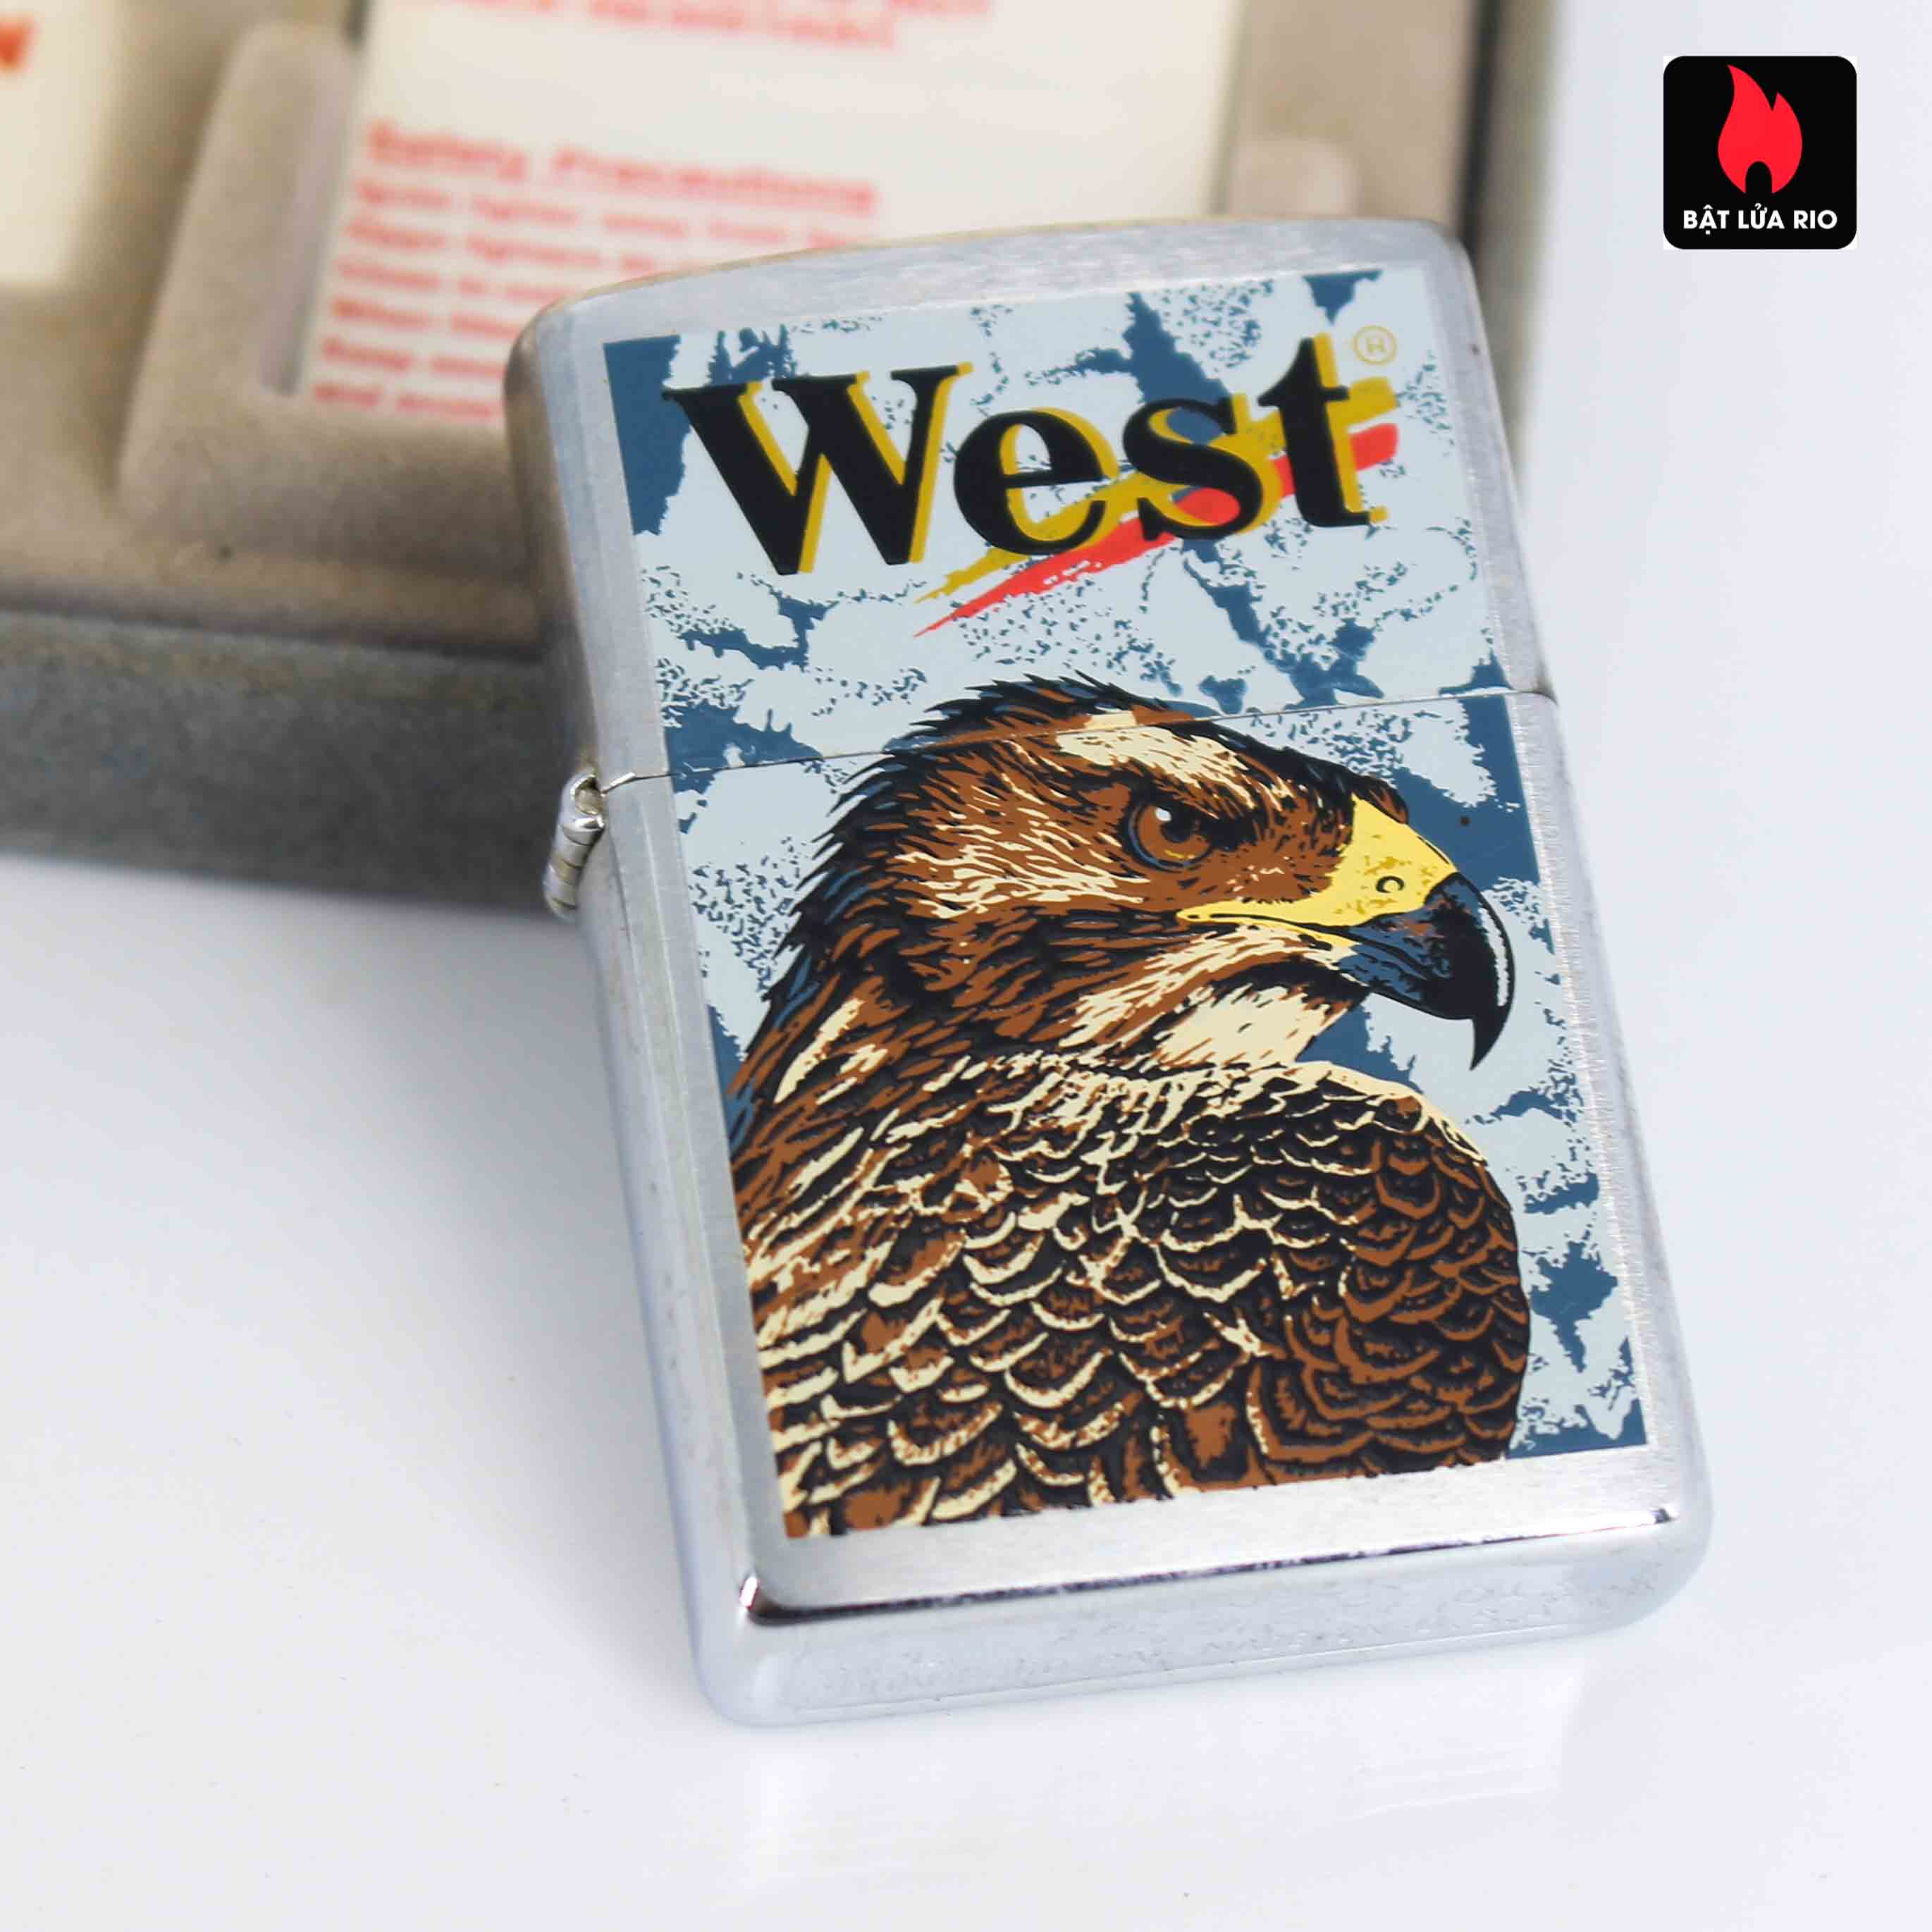 Zippo 2001 - Wild Lighters Edition - Limited Edition /1000 11